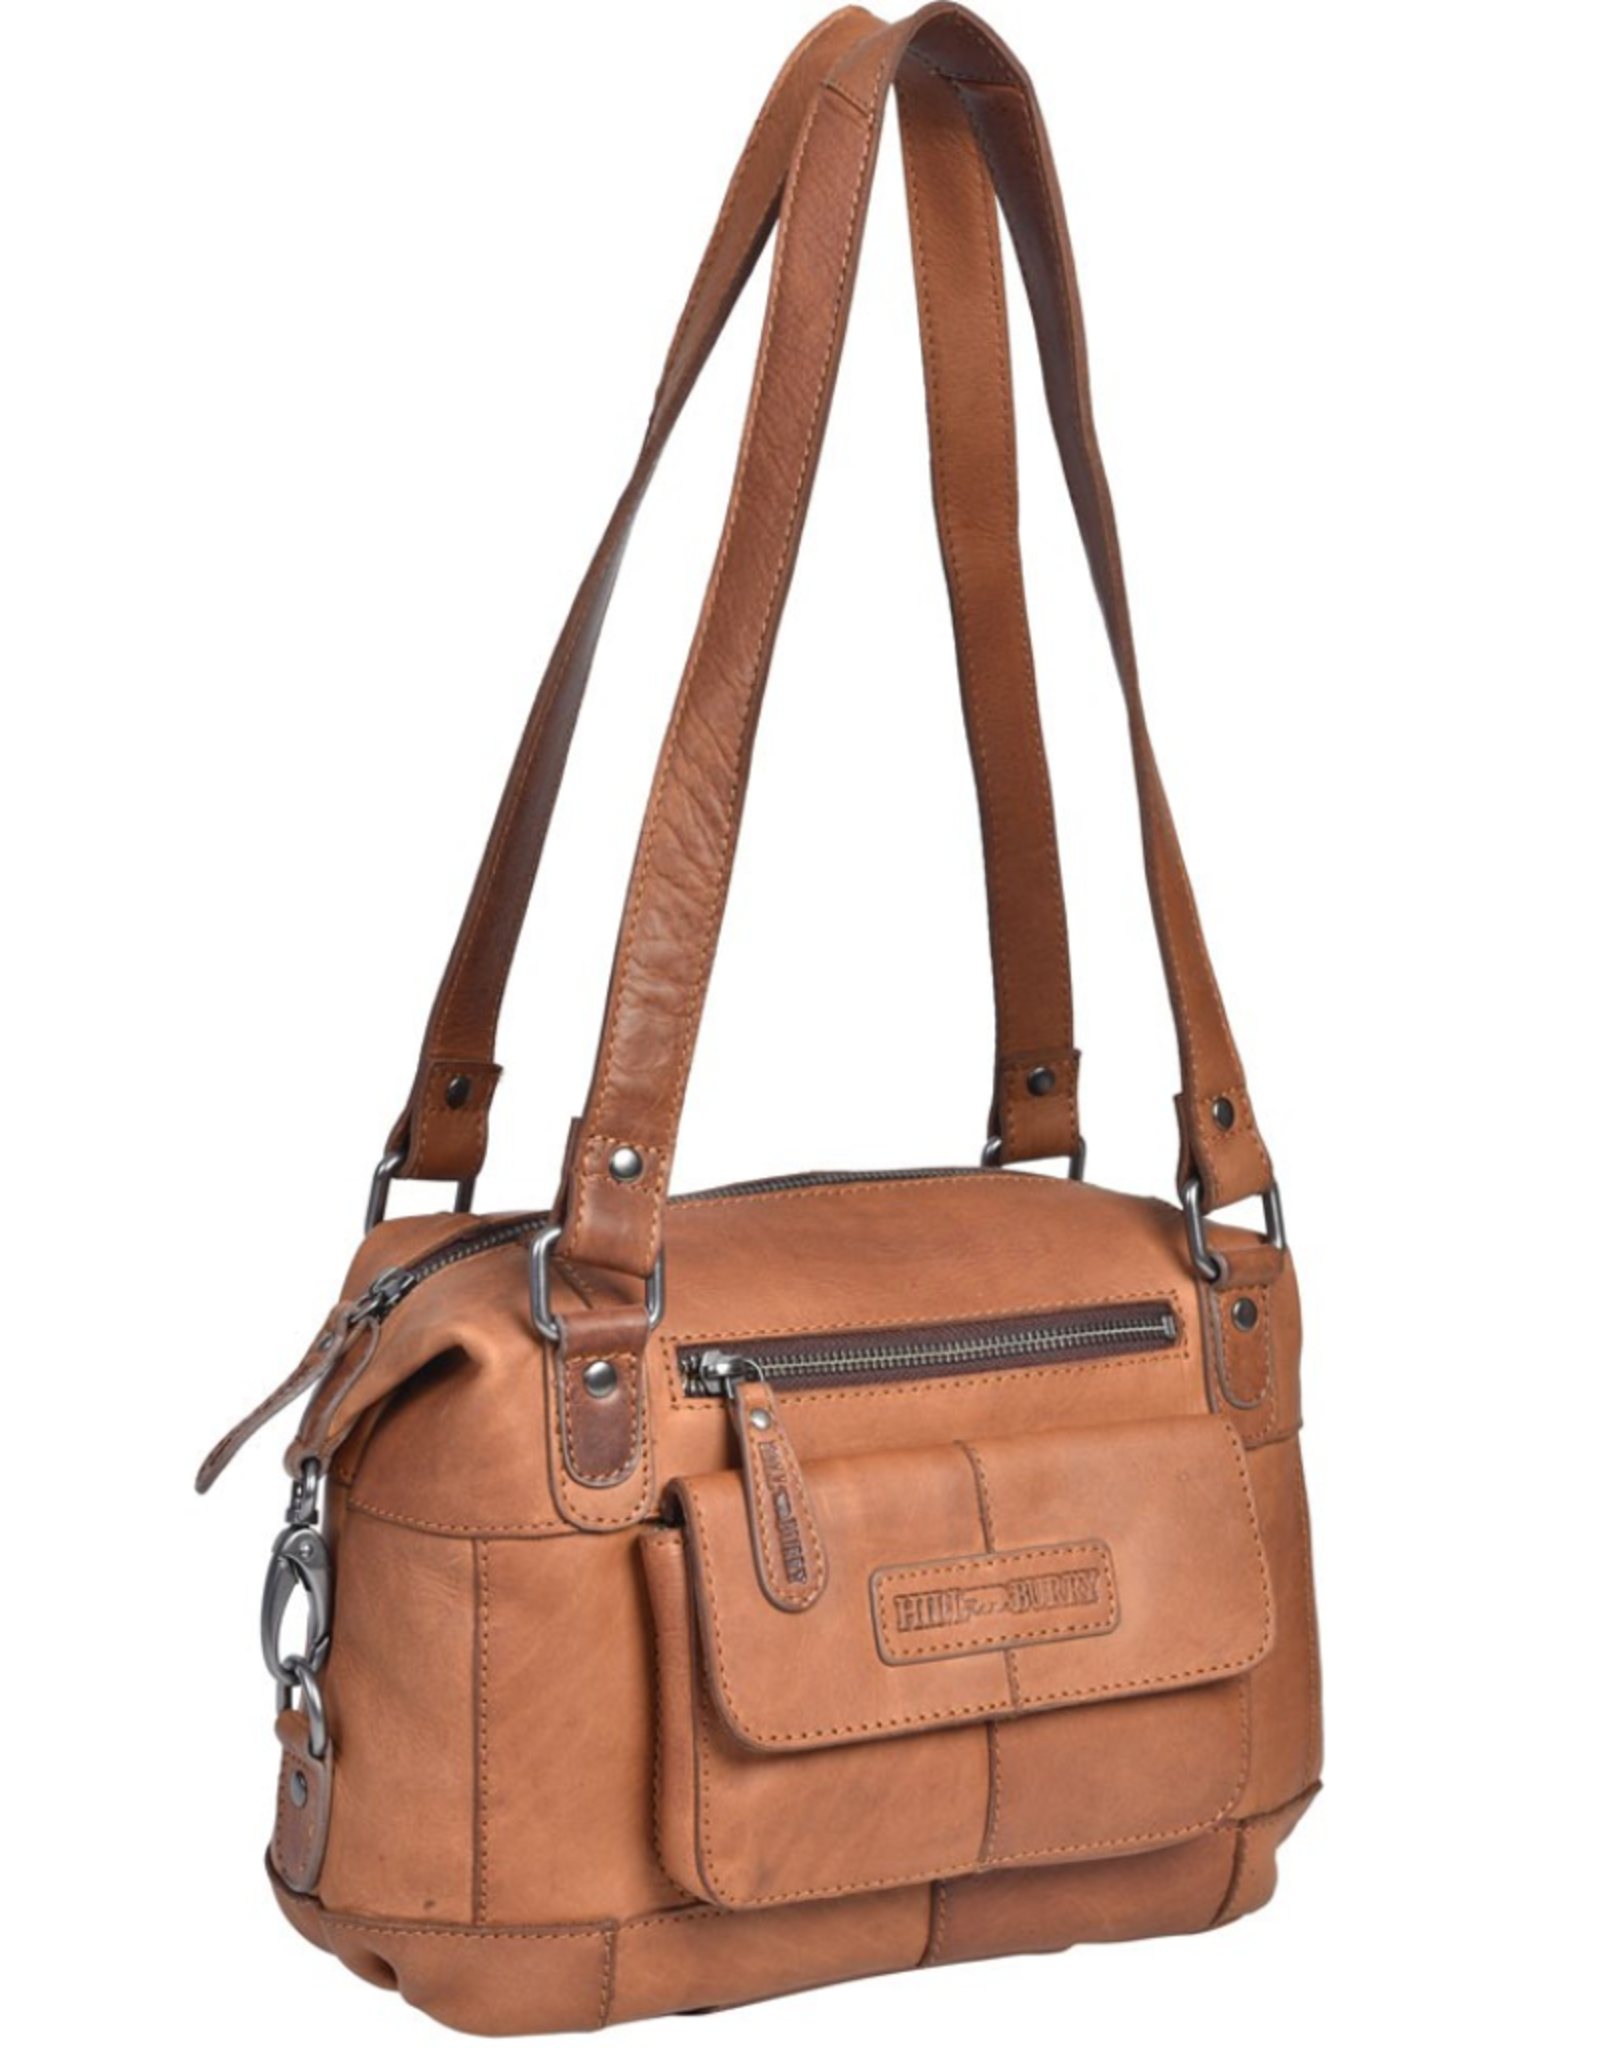 HillBurry Leather Shoulder bags  leather crossbody bags - HillBurry Leather Shoulder bag medium (cognac)